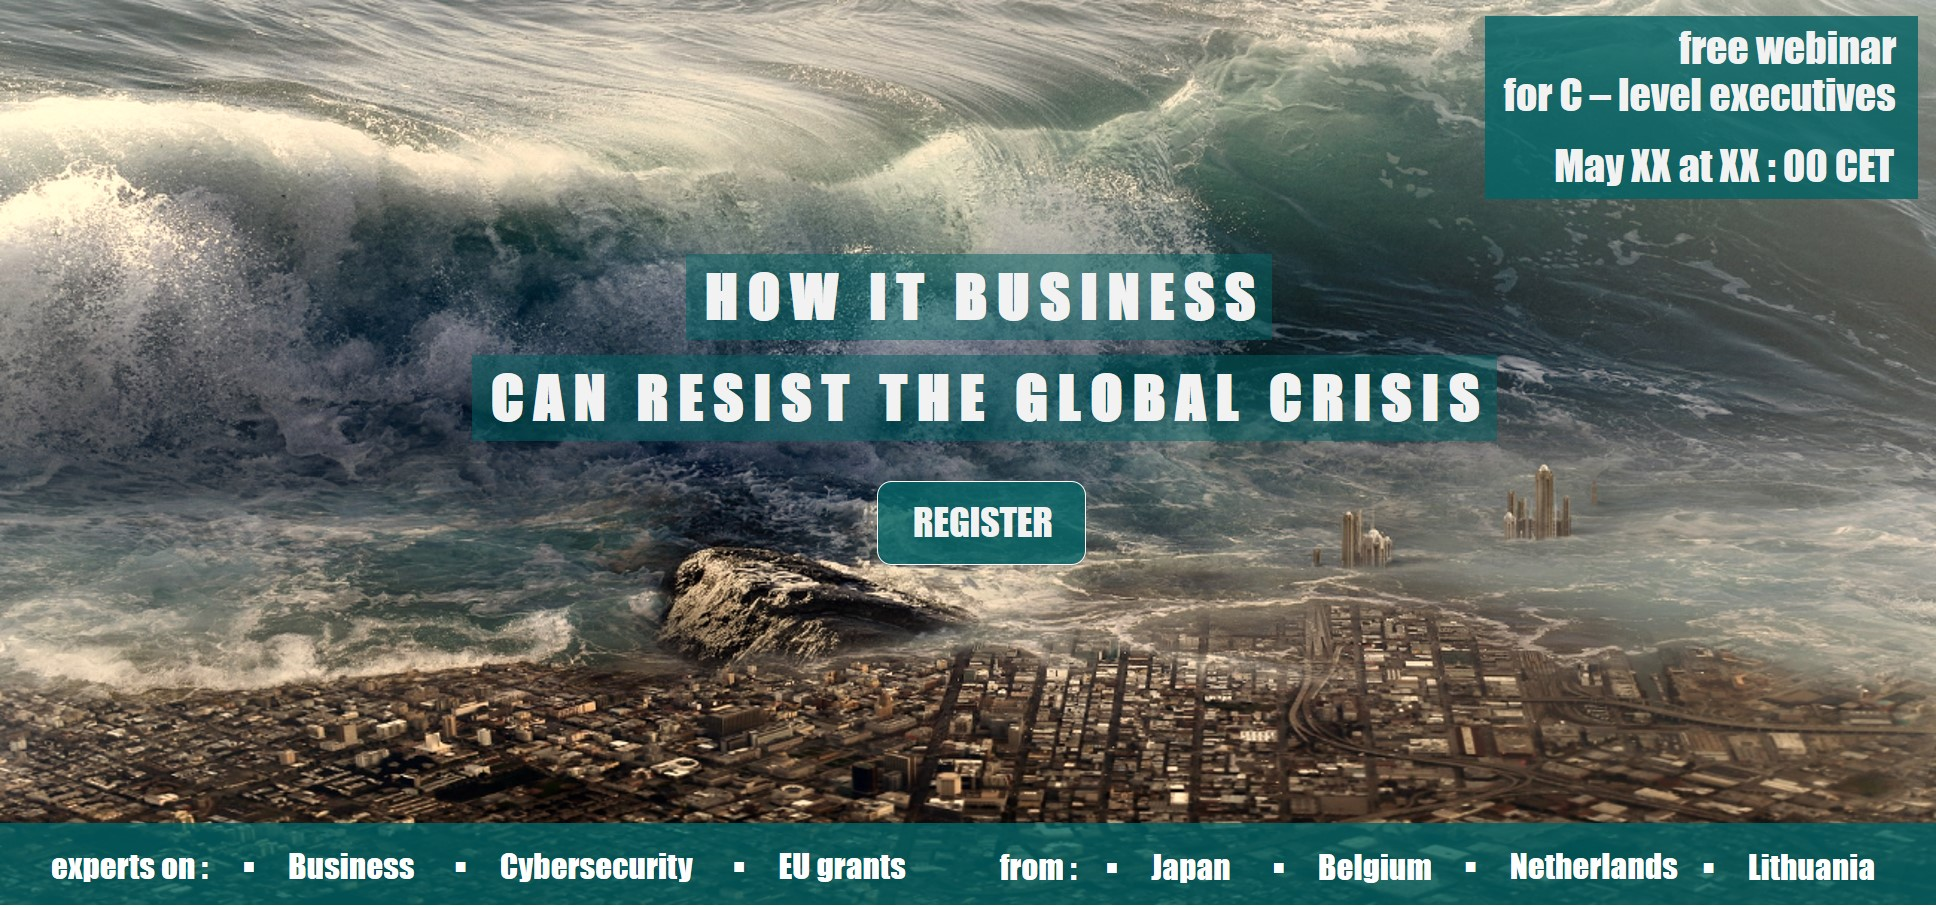 Webinar - How IT Business can resist the global crisis